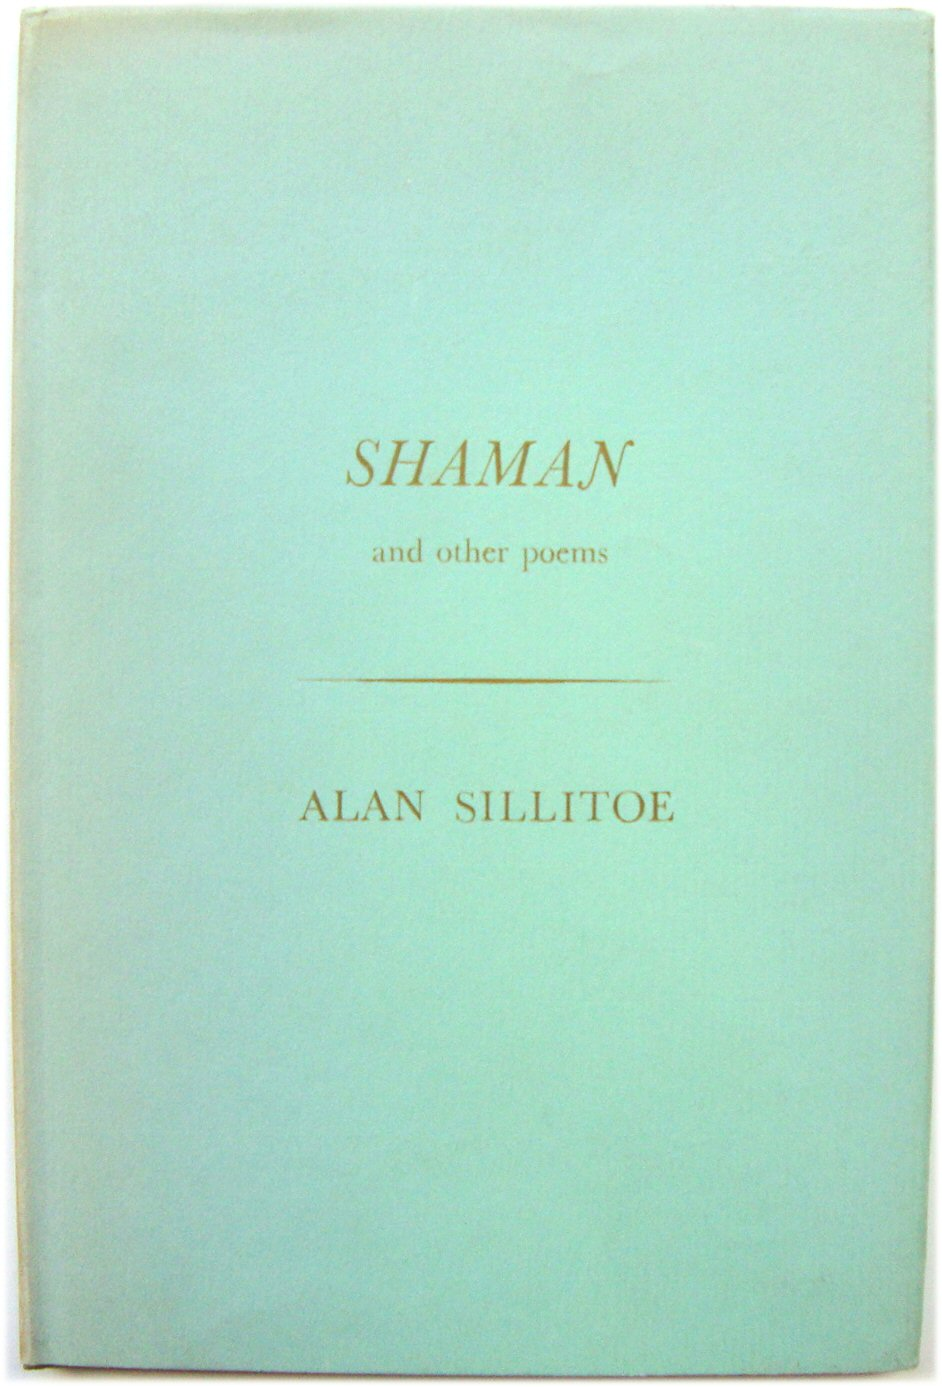 Image for Shaman and Other Poems